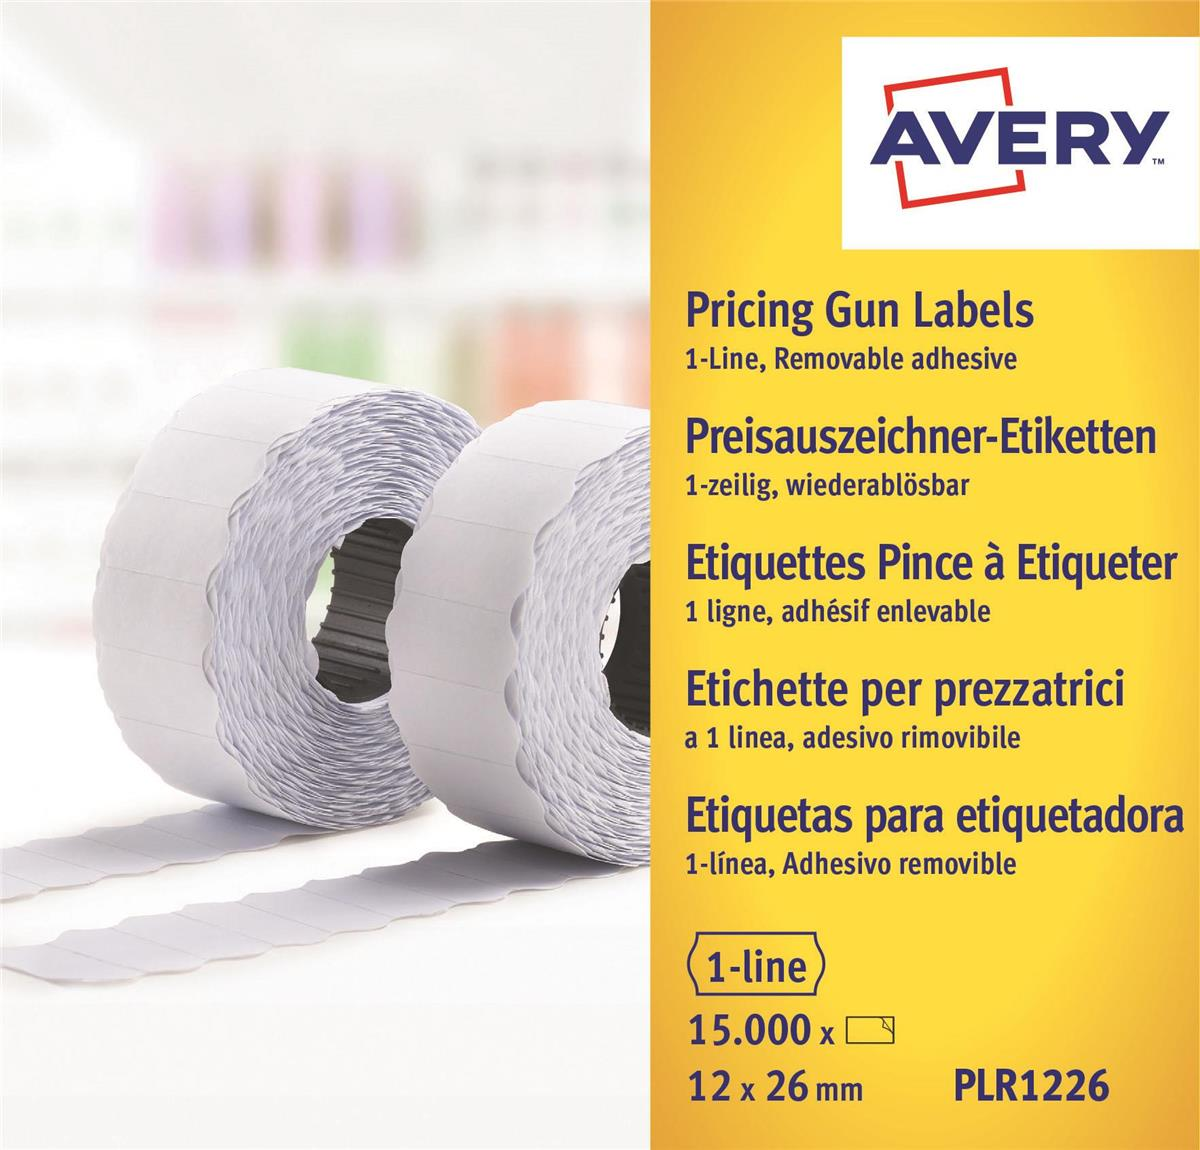 Image for Avery Labels for Labelling Gun 1-Line Removable White 12x26mm 1500 per Roll Ref PLR1226 [Pack 10]